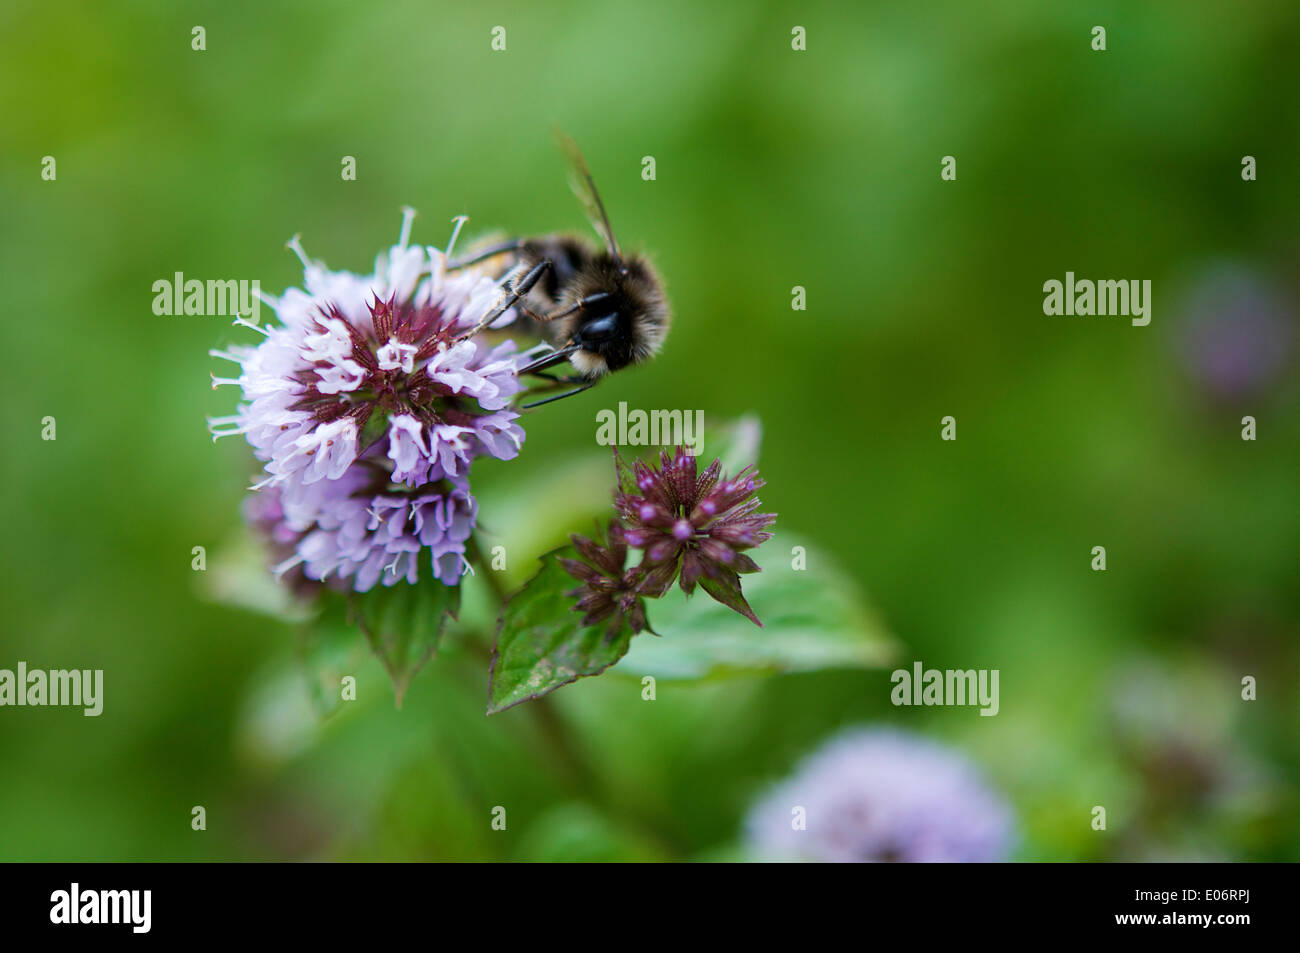 Humble bee on the flower of a Mentha citrata plant at a garden in France. - Stock Image